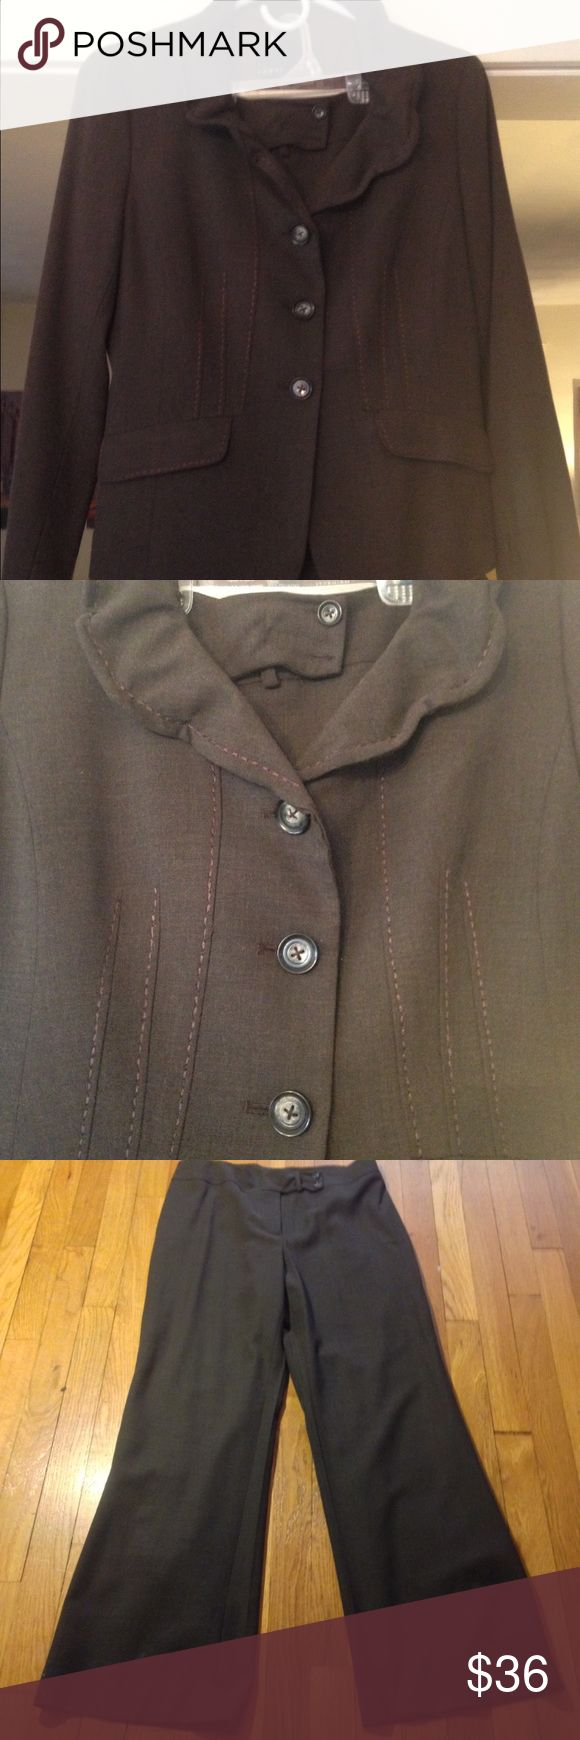 Beautiful Yansi Fugel Wide Leg Suit Wonderful detail to this suit.   Wired collar   Beautiful seaming in the front. 3 Seasons. Great piece for your professional closet. Yansi Fugel Other